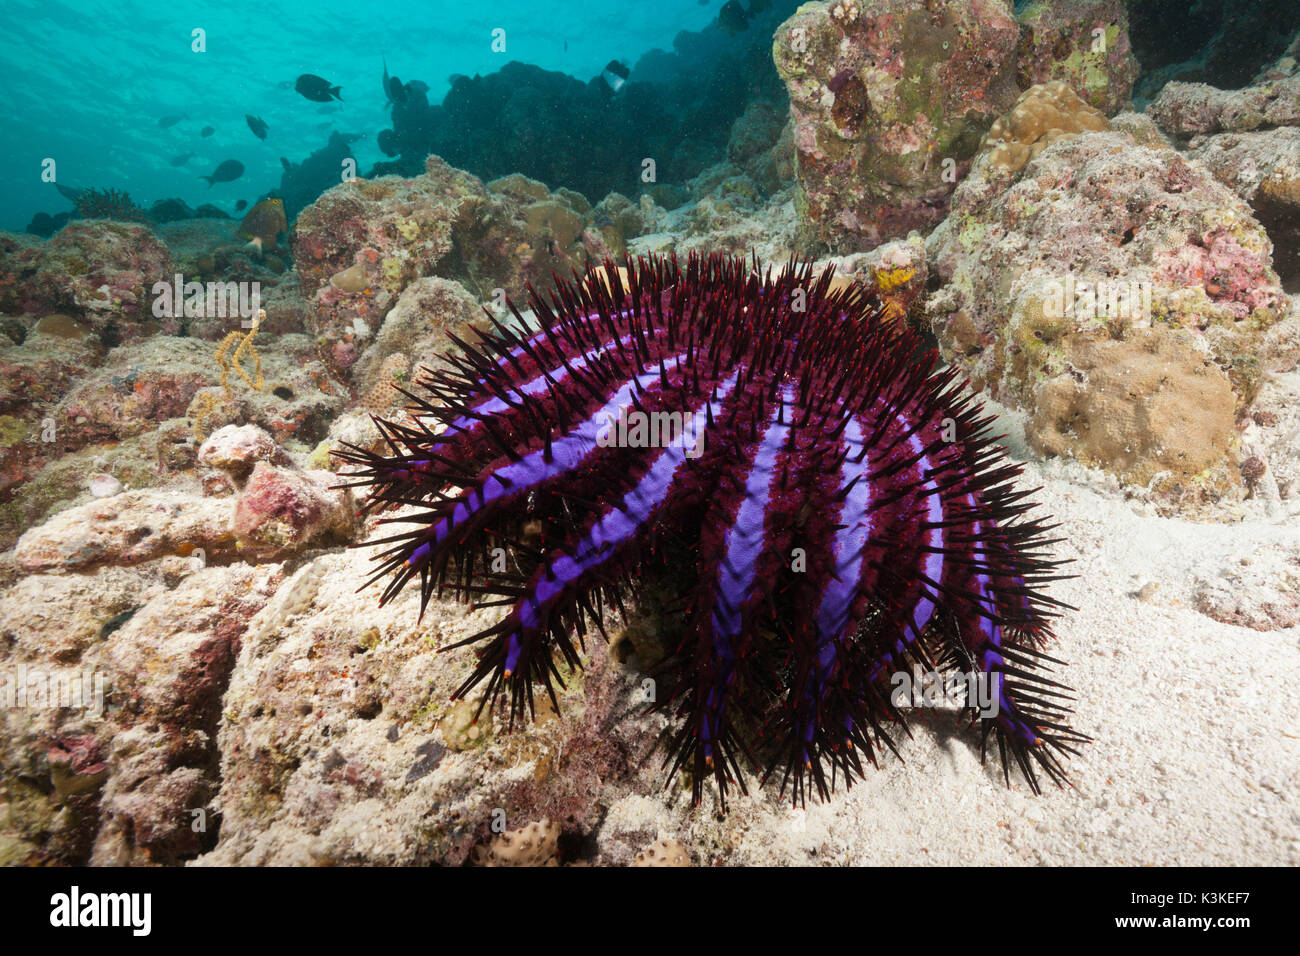 Crown-of-Thorns Starfish, Acanthaster planci, North Male Atoll, Maldives - Stock Image